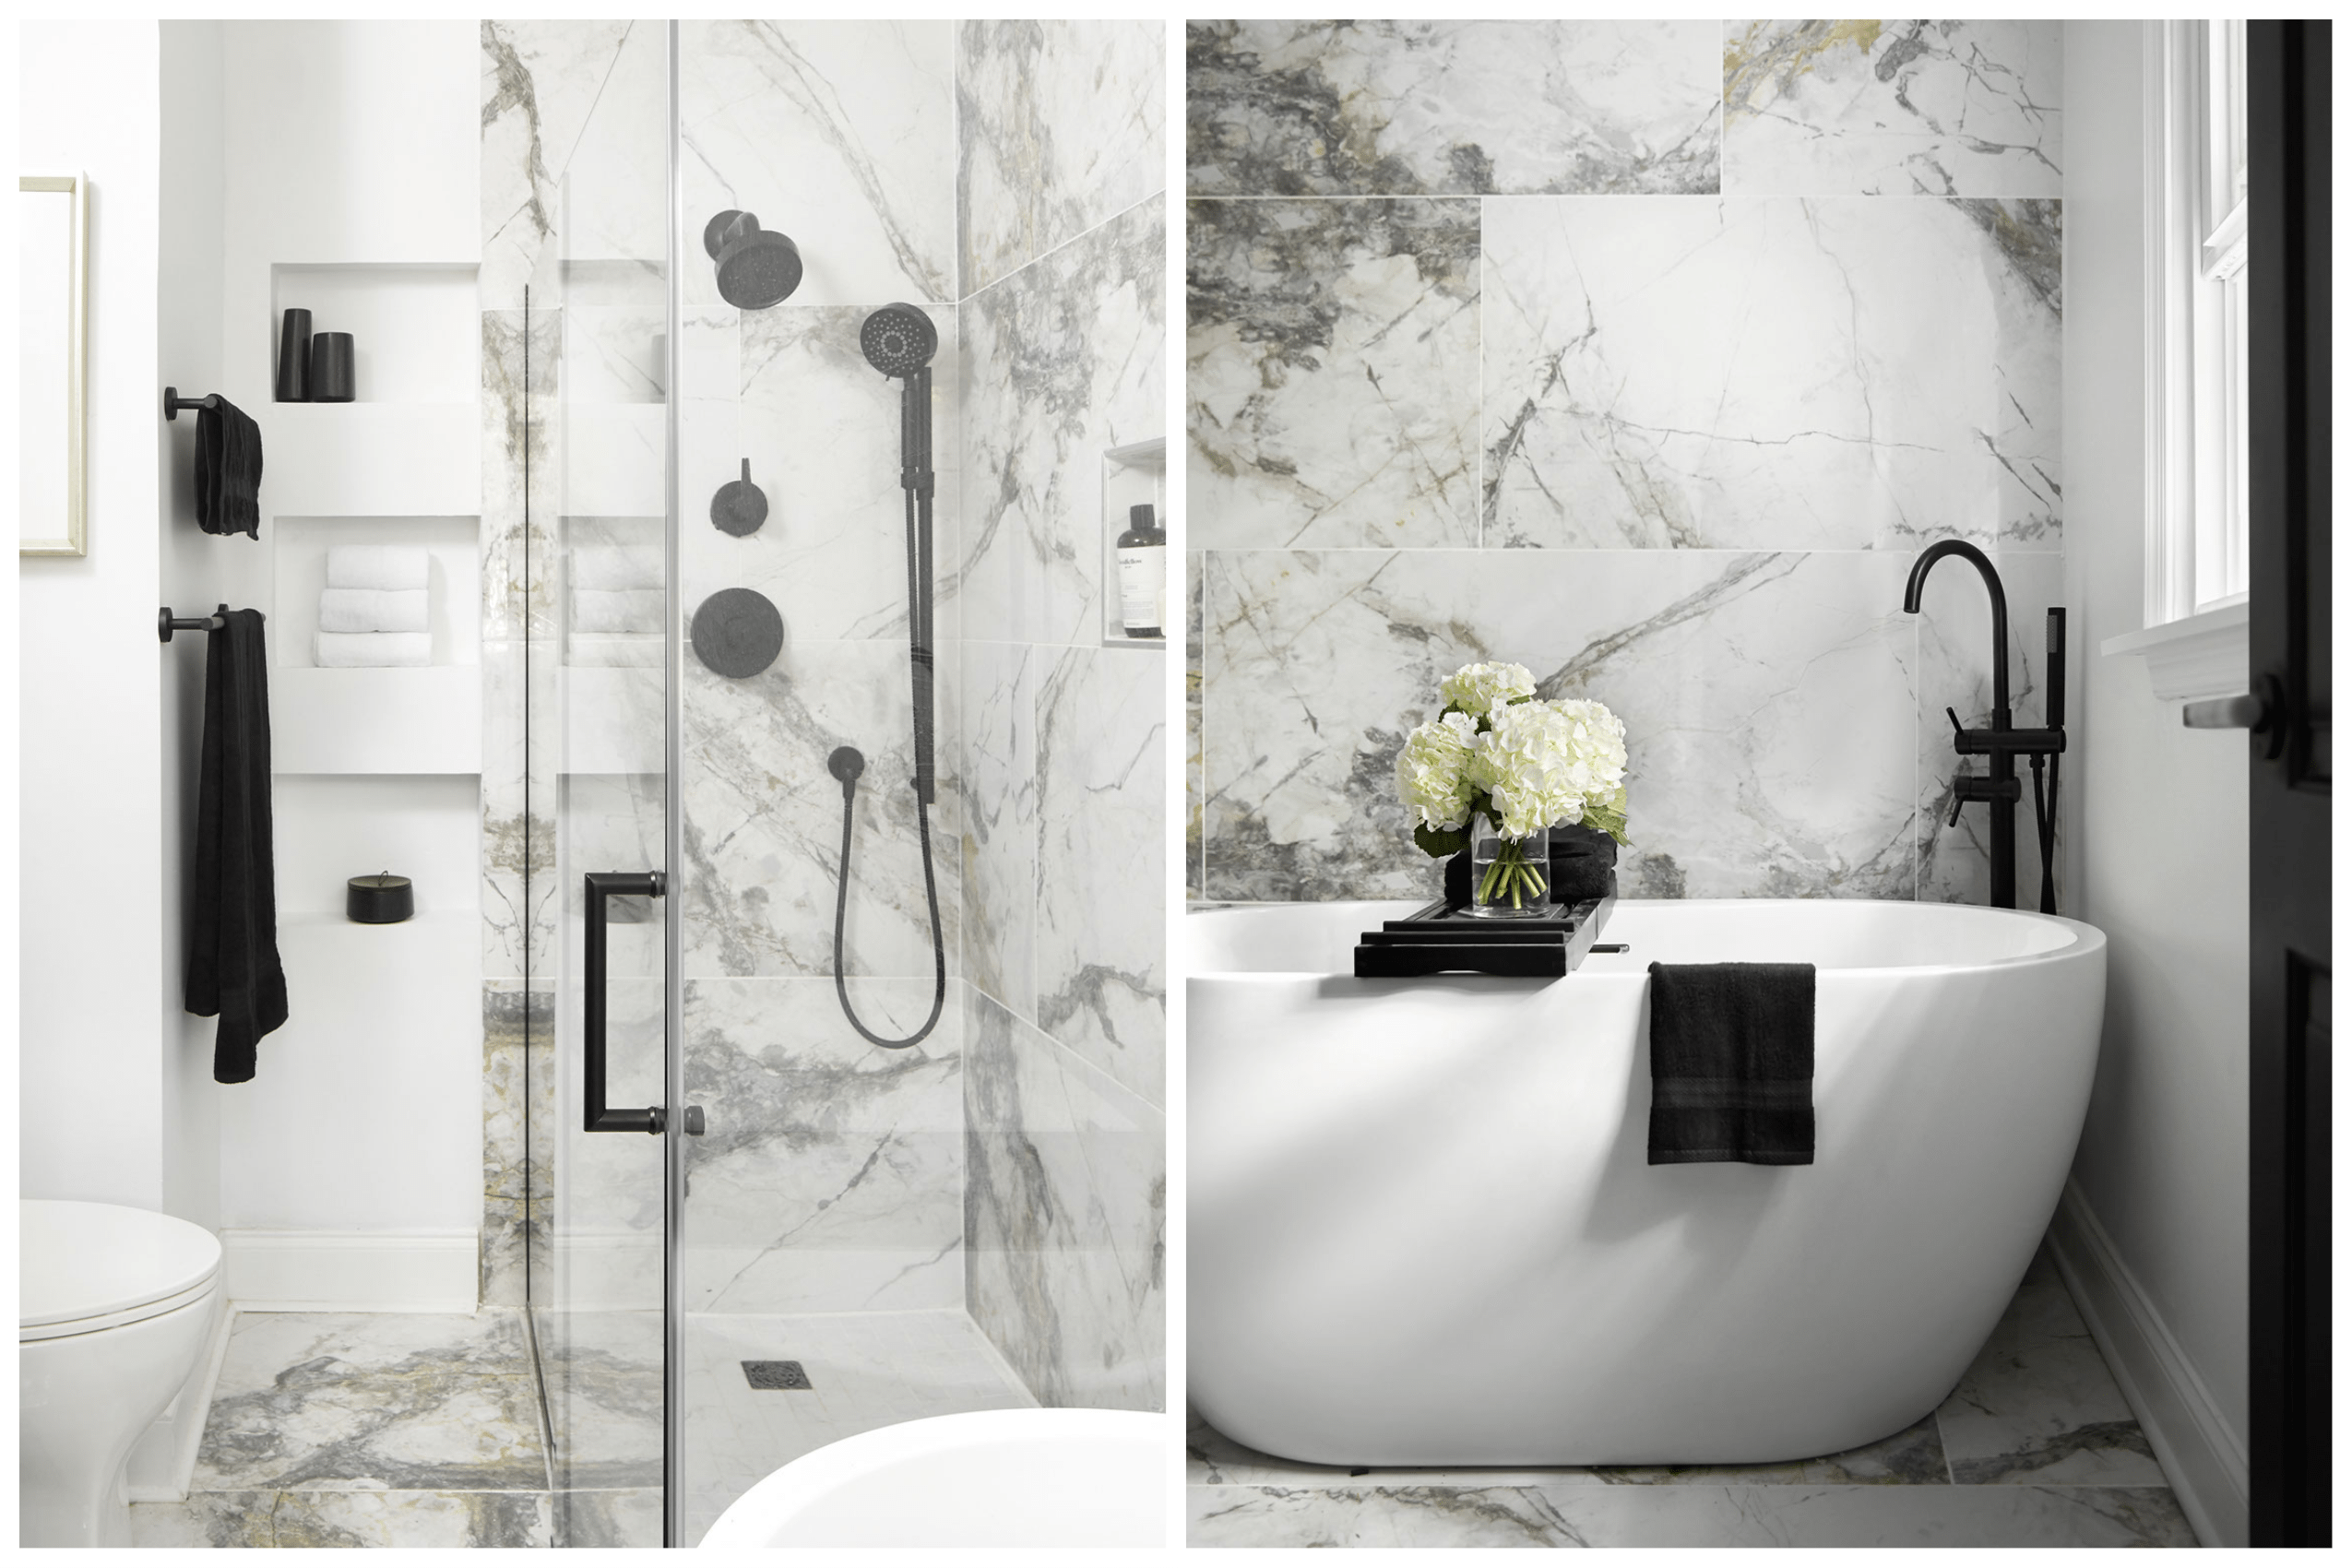 white marble-look tiled bathroom with large bathtub and shower